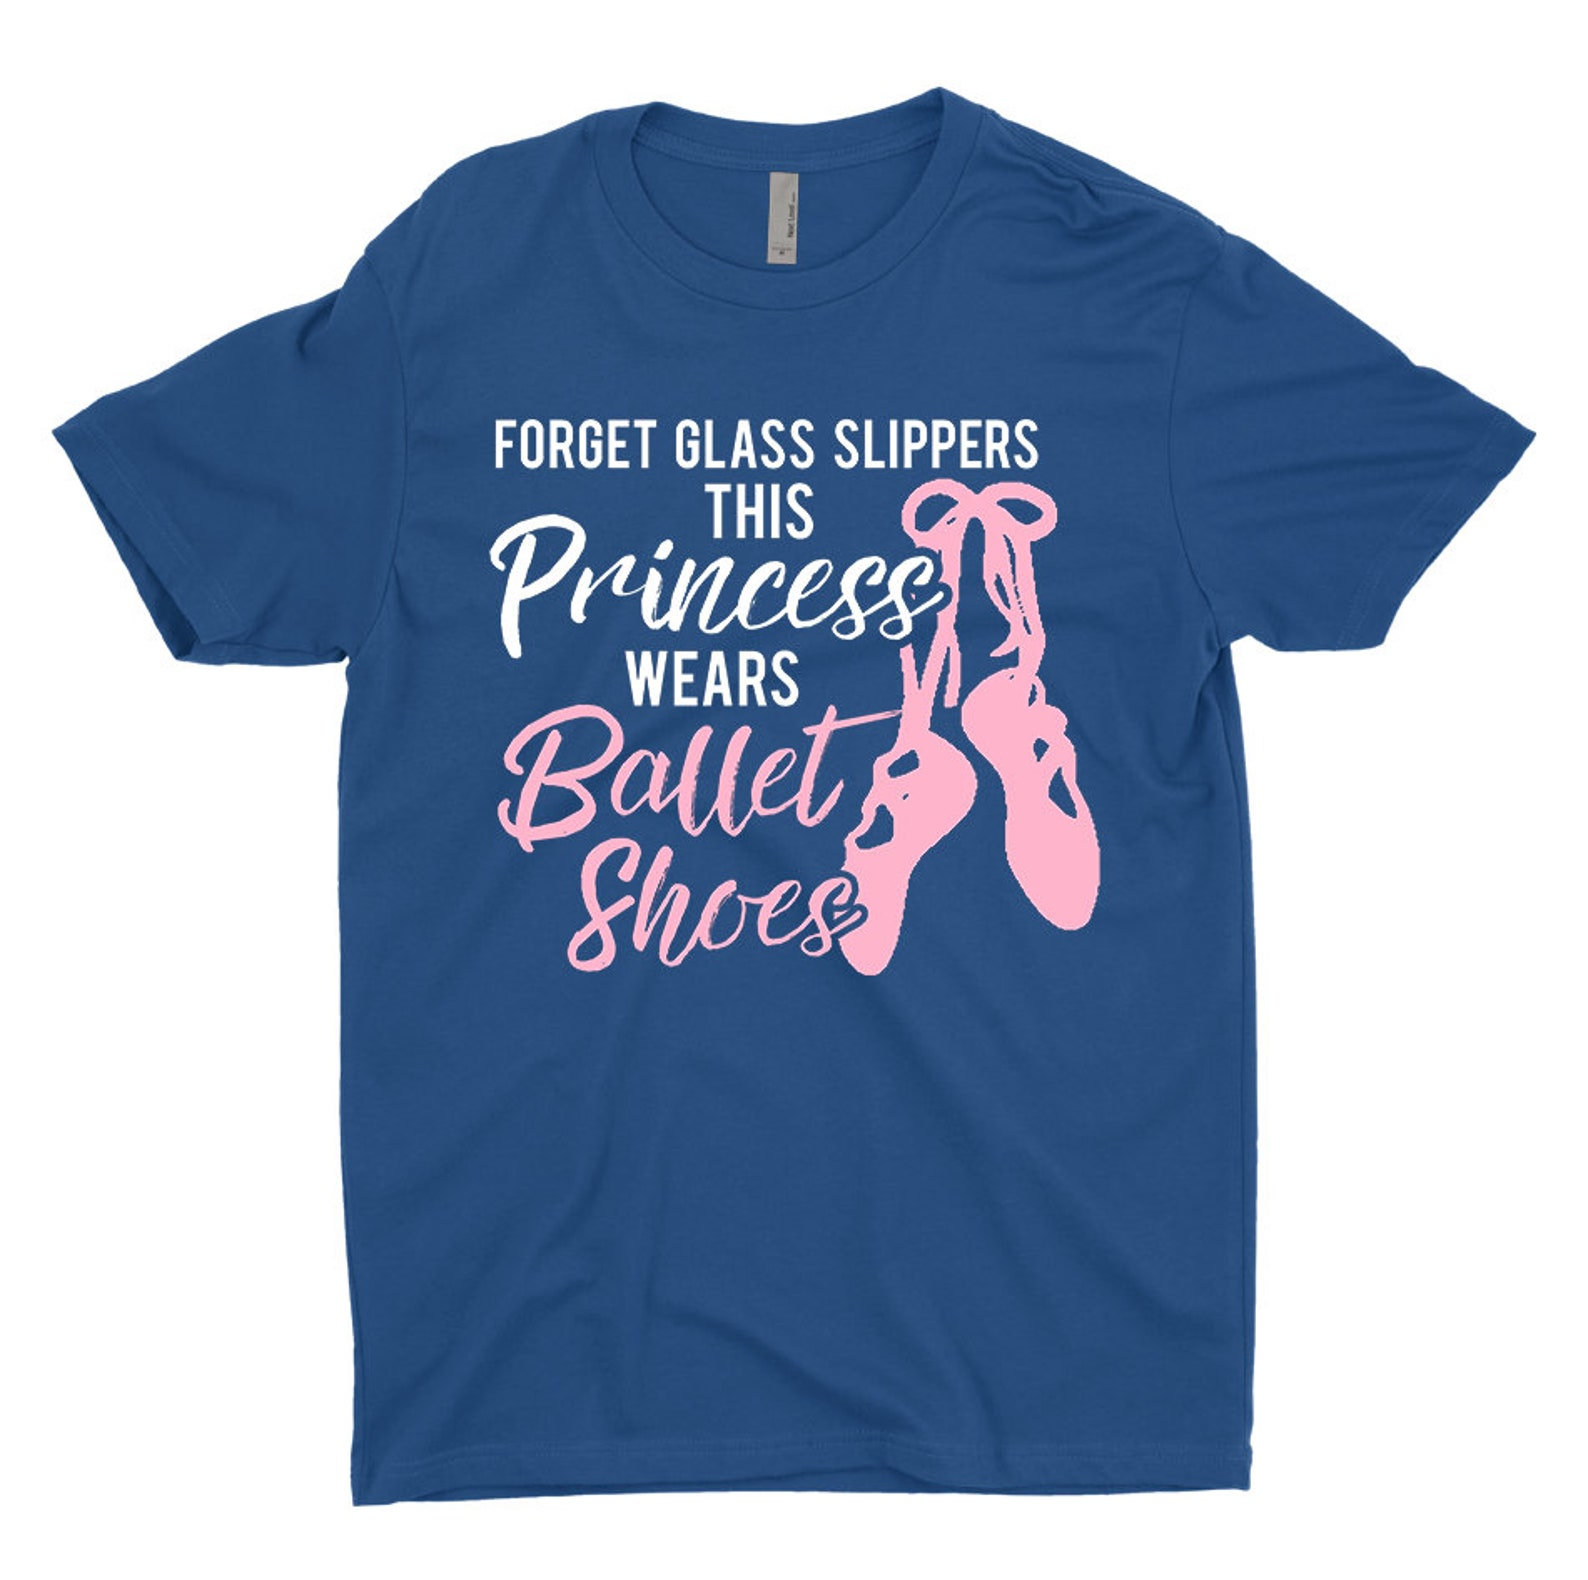 dancing gift dancing shirt dancer shirt forget glass slippers this princess wears ballet shoes t-shirt